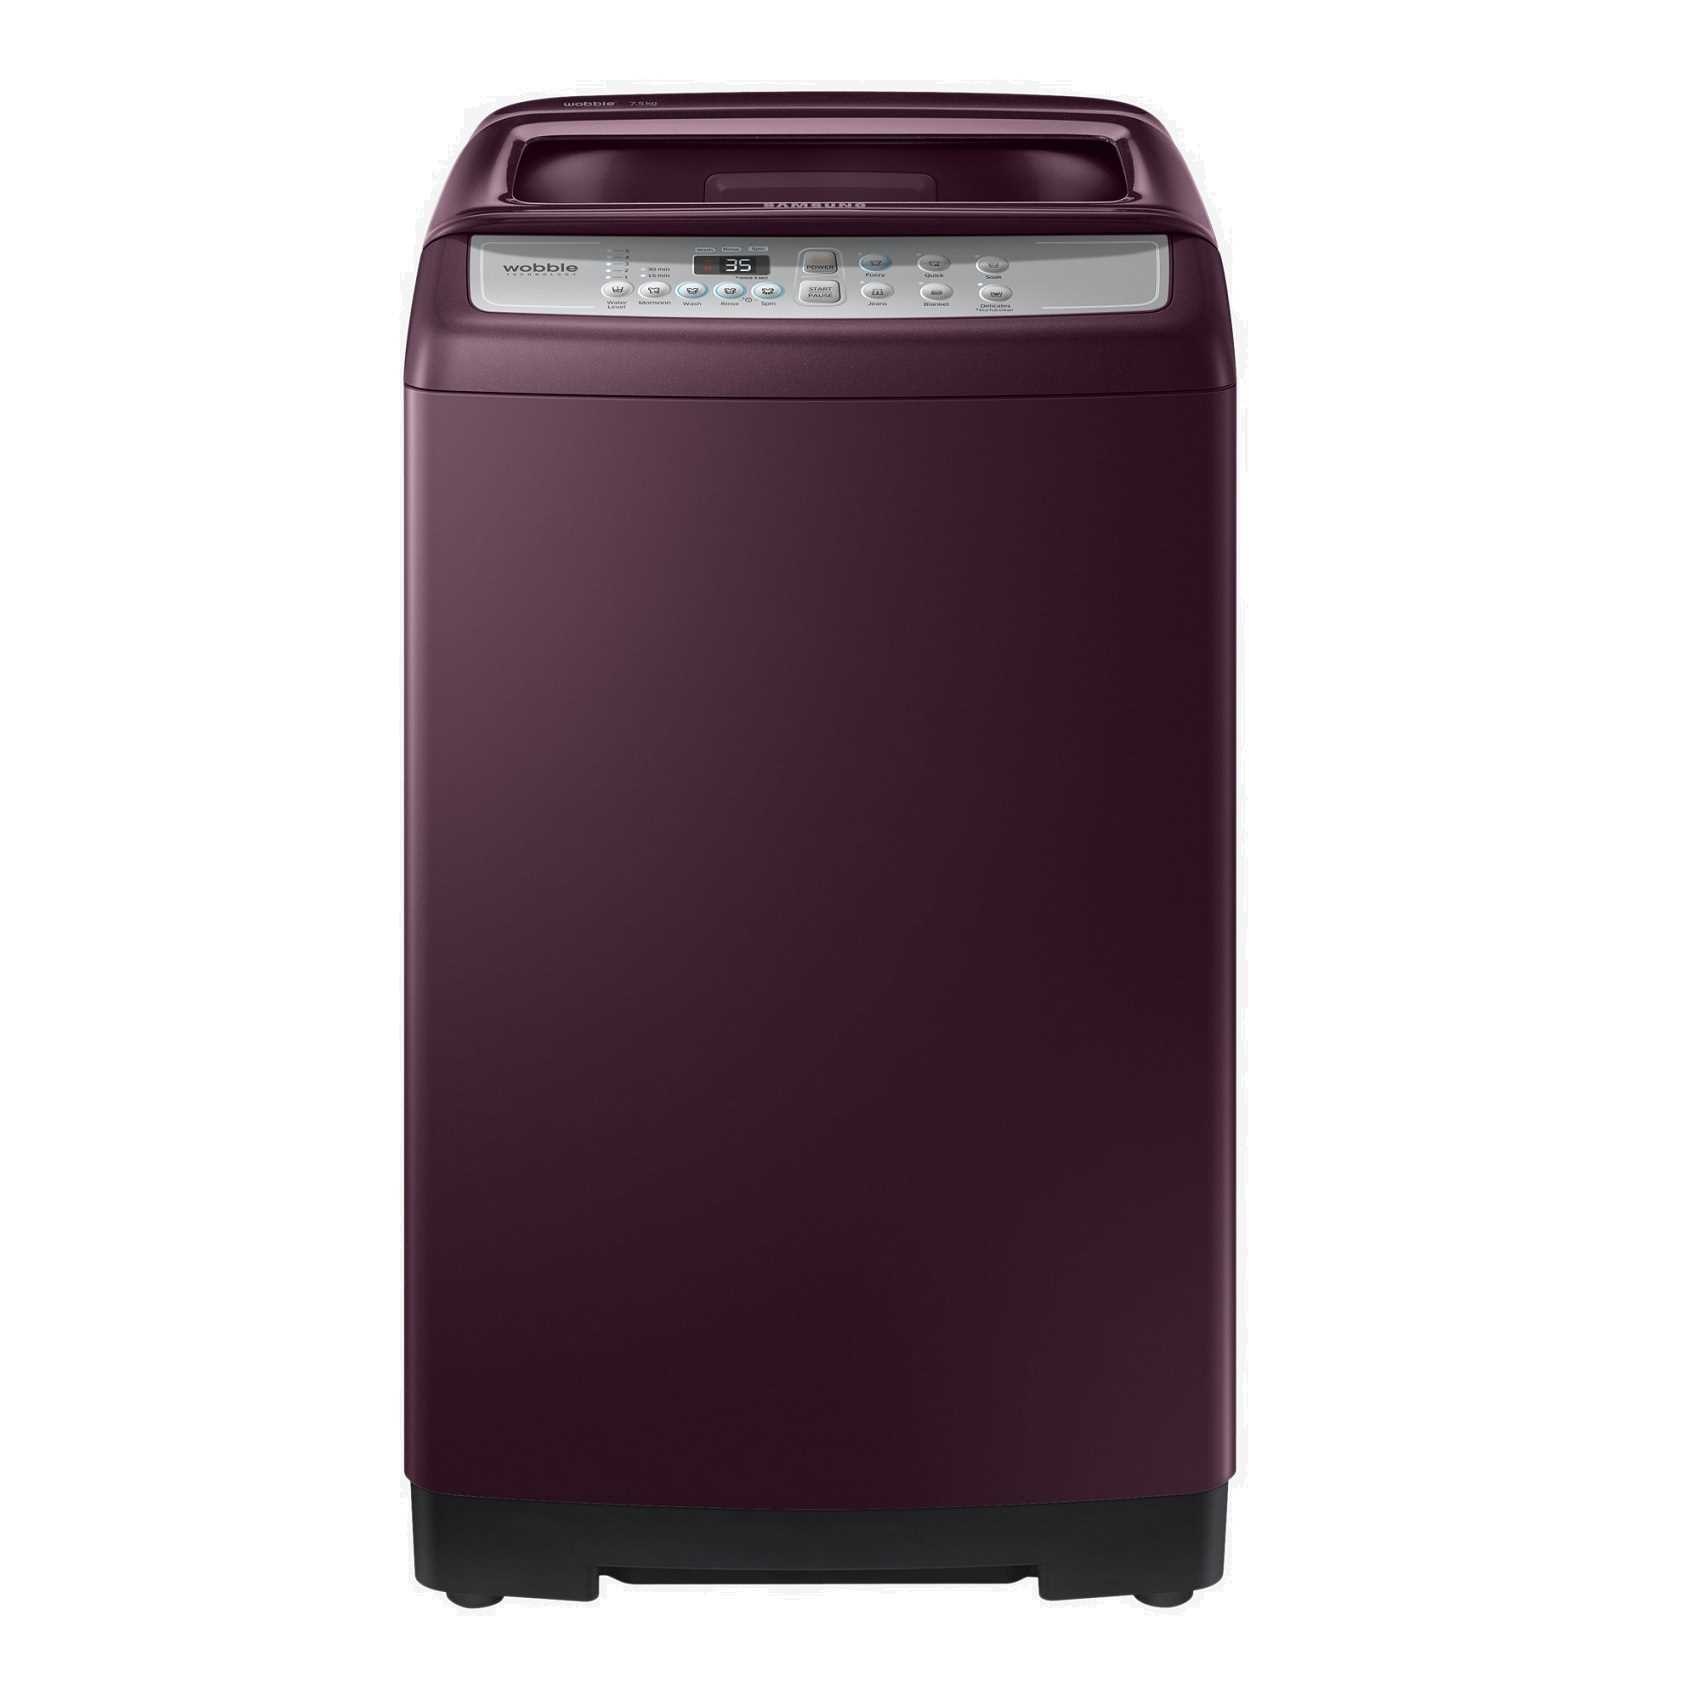 Samsung WA75M4500HP 7.5 Kg Fully Automatic Top Loading Washing Machine